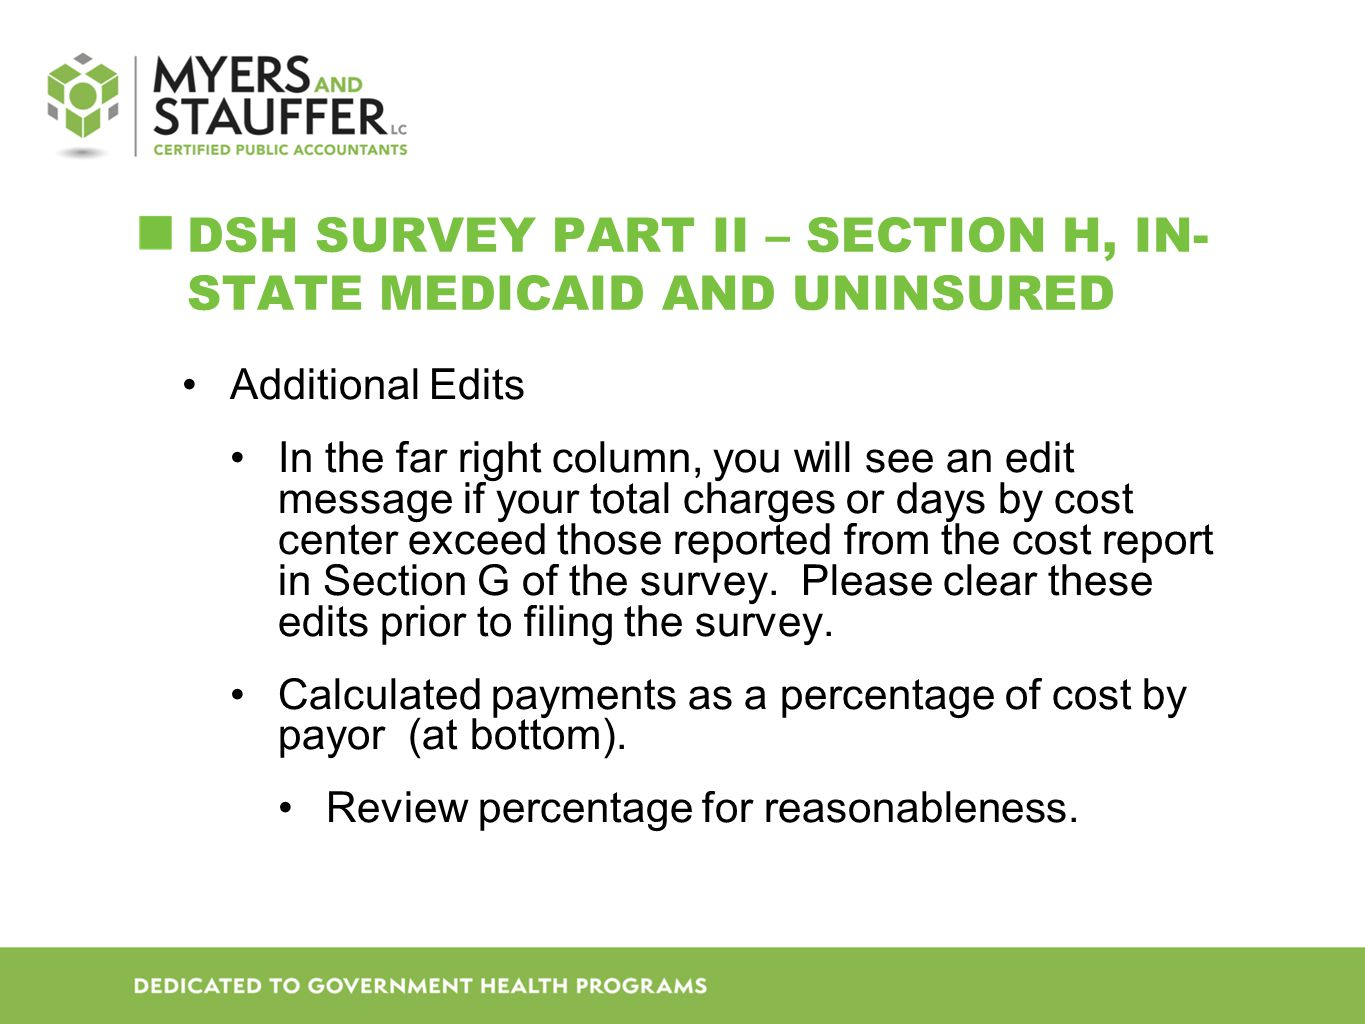 DSH SURVEY PART II – SECTION H, IN- STATE MEDICAID AND UNINSURED Additional Edits In the far right column, you will see an edit message if your total charges or days by cost center exceed those reported from the cost report in Section G of the survey.